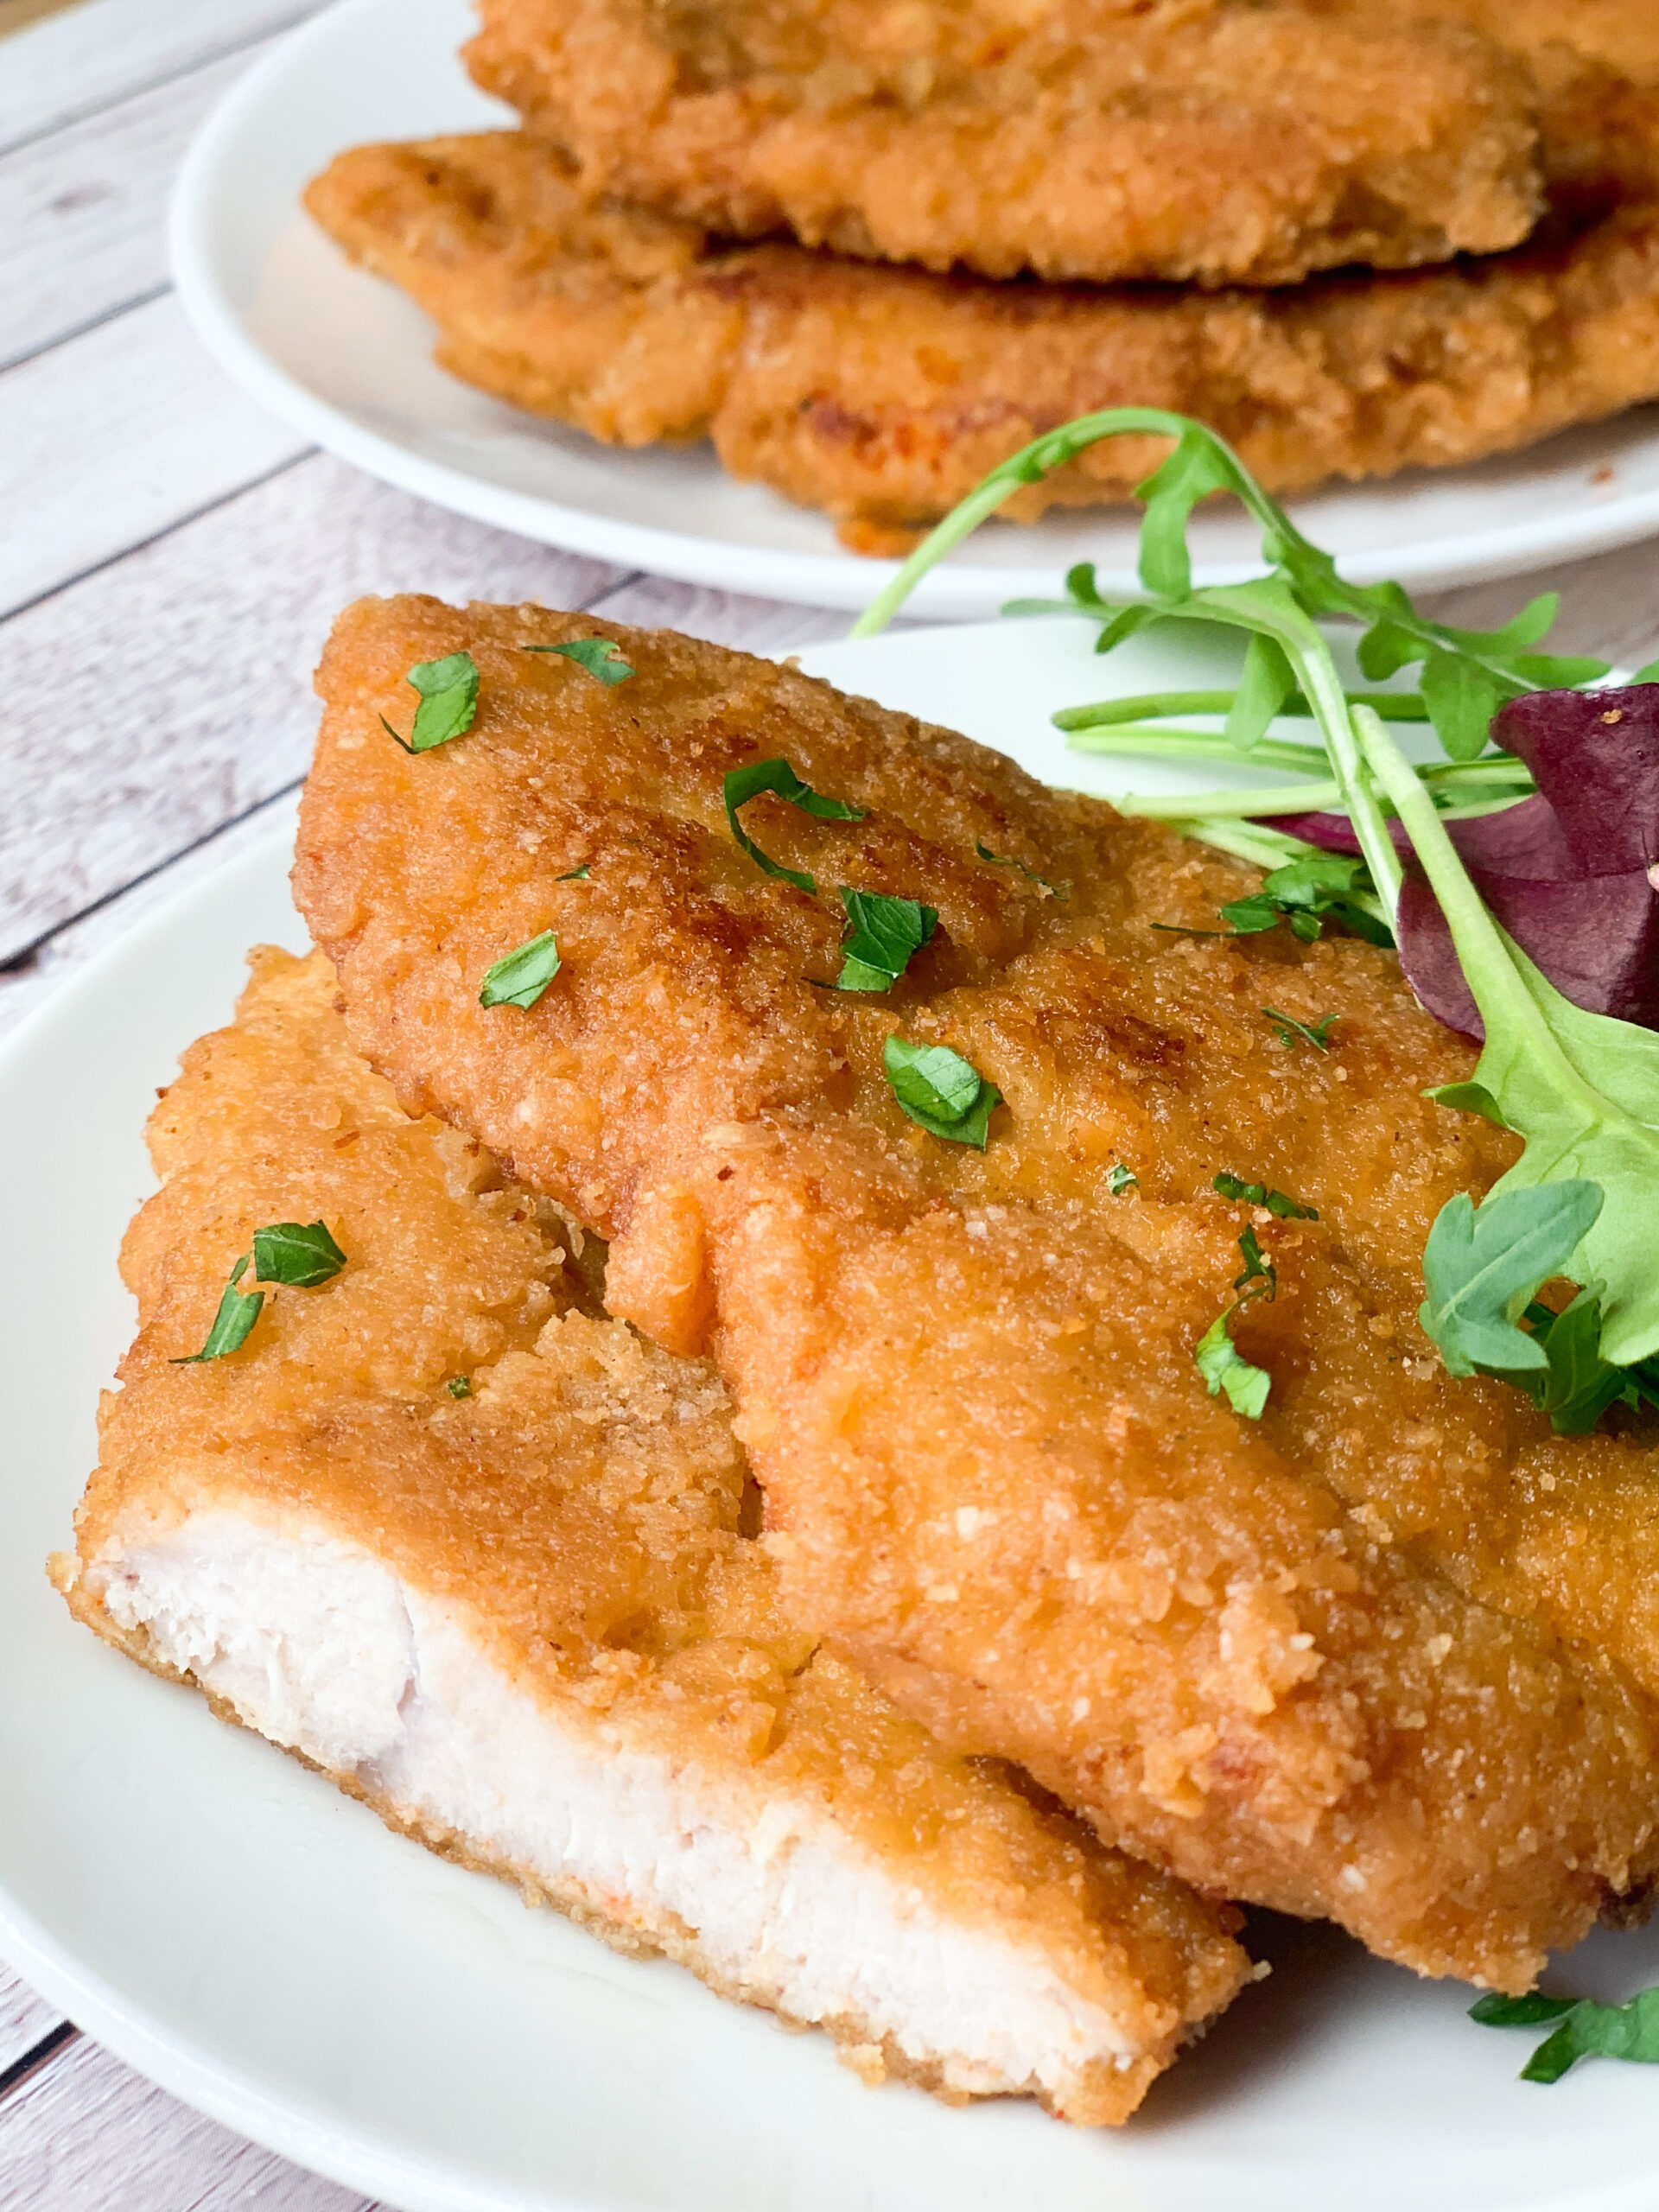 Photo of keto schnitzel with keto breading crispy